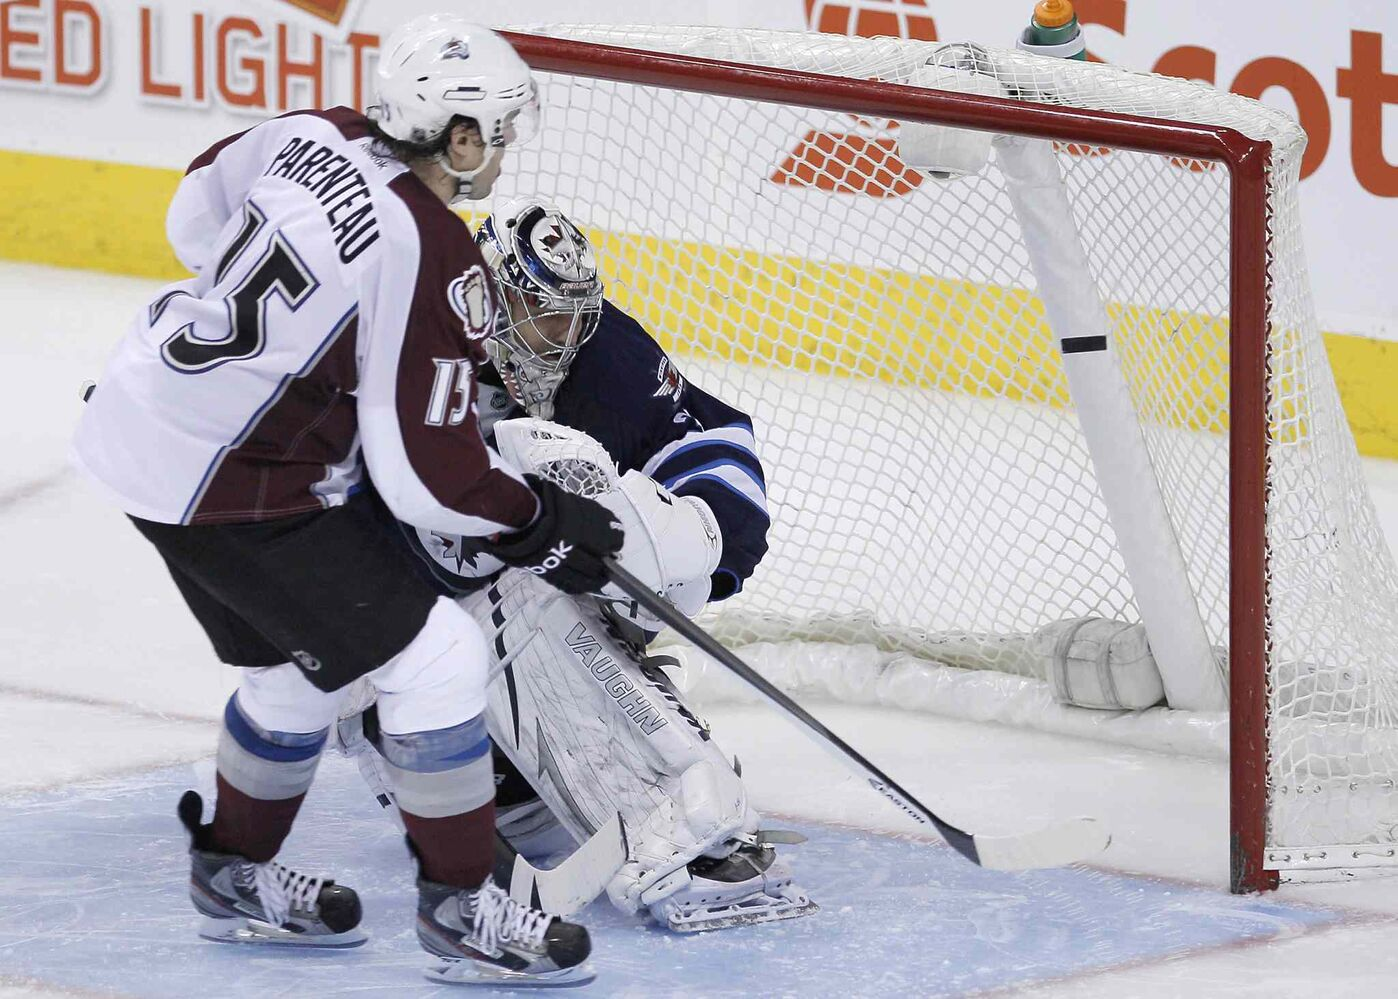 P.A. Parenteau (left) of the Colorado Avalanche scores the game-winning shootout goal shot on Winnipeg Jets goaltender Ondrej Pavelec.